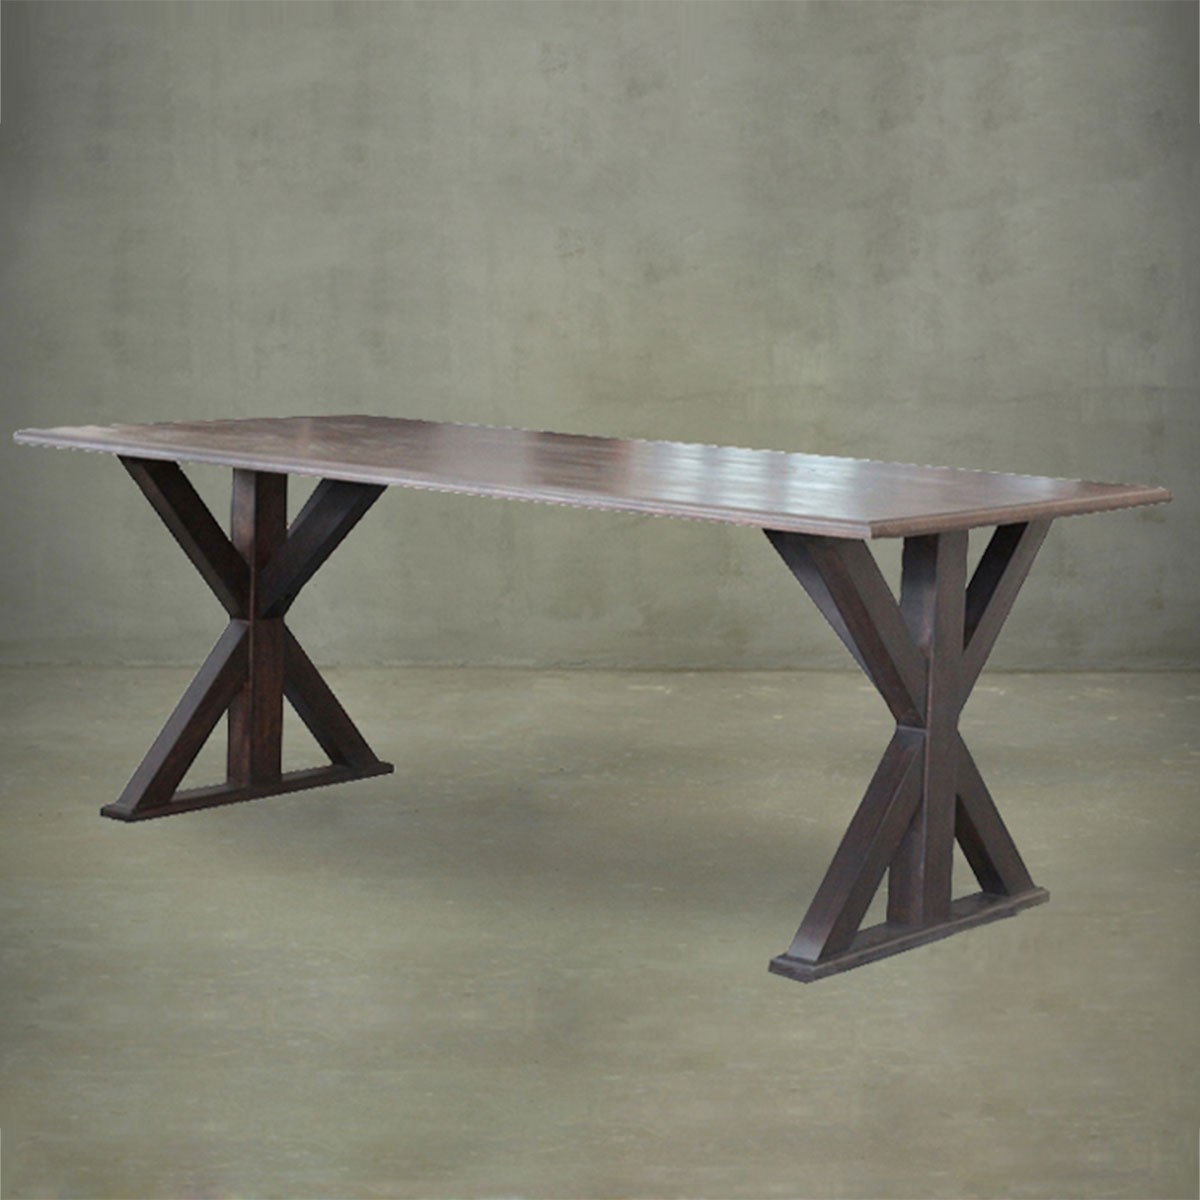 """78.7"""" x 39.4"""" Dining Table (PJT001)"""